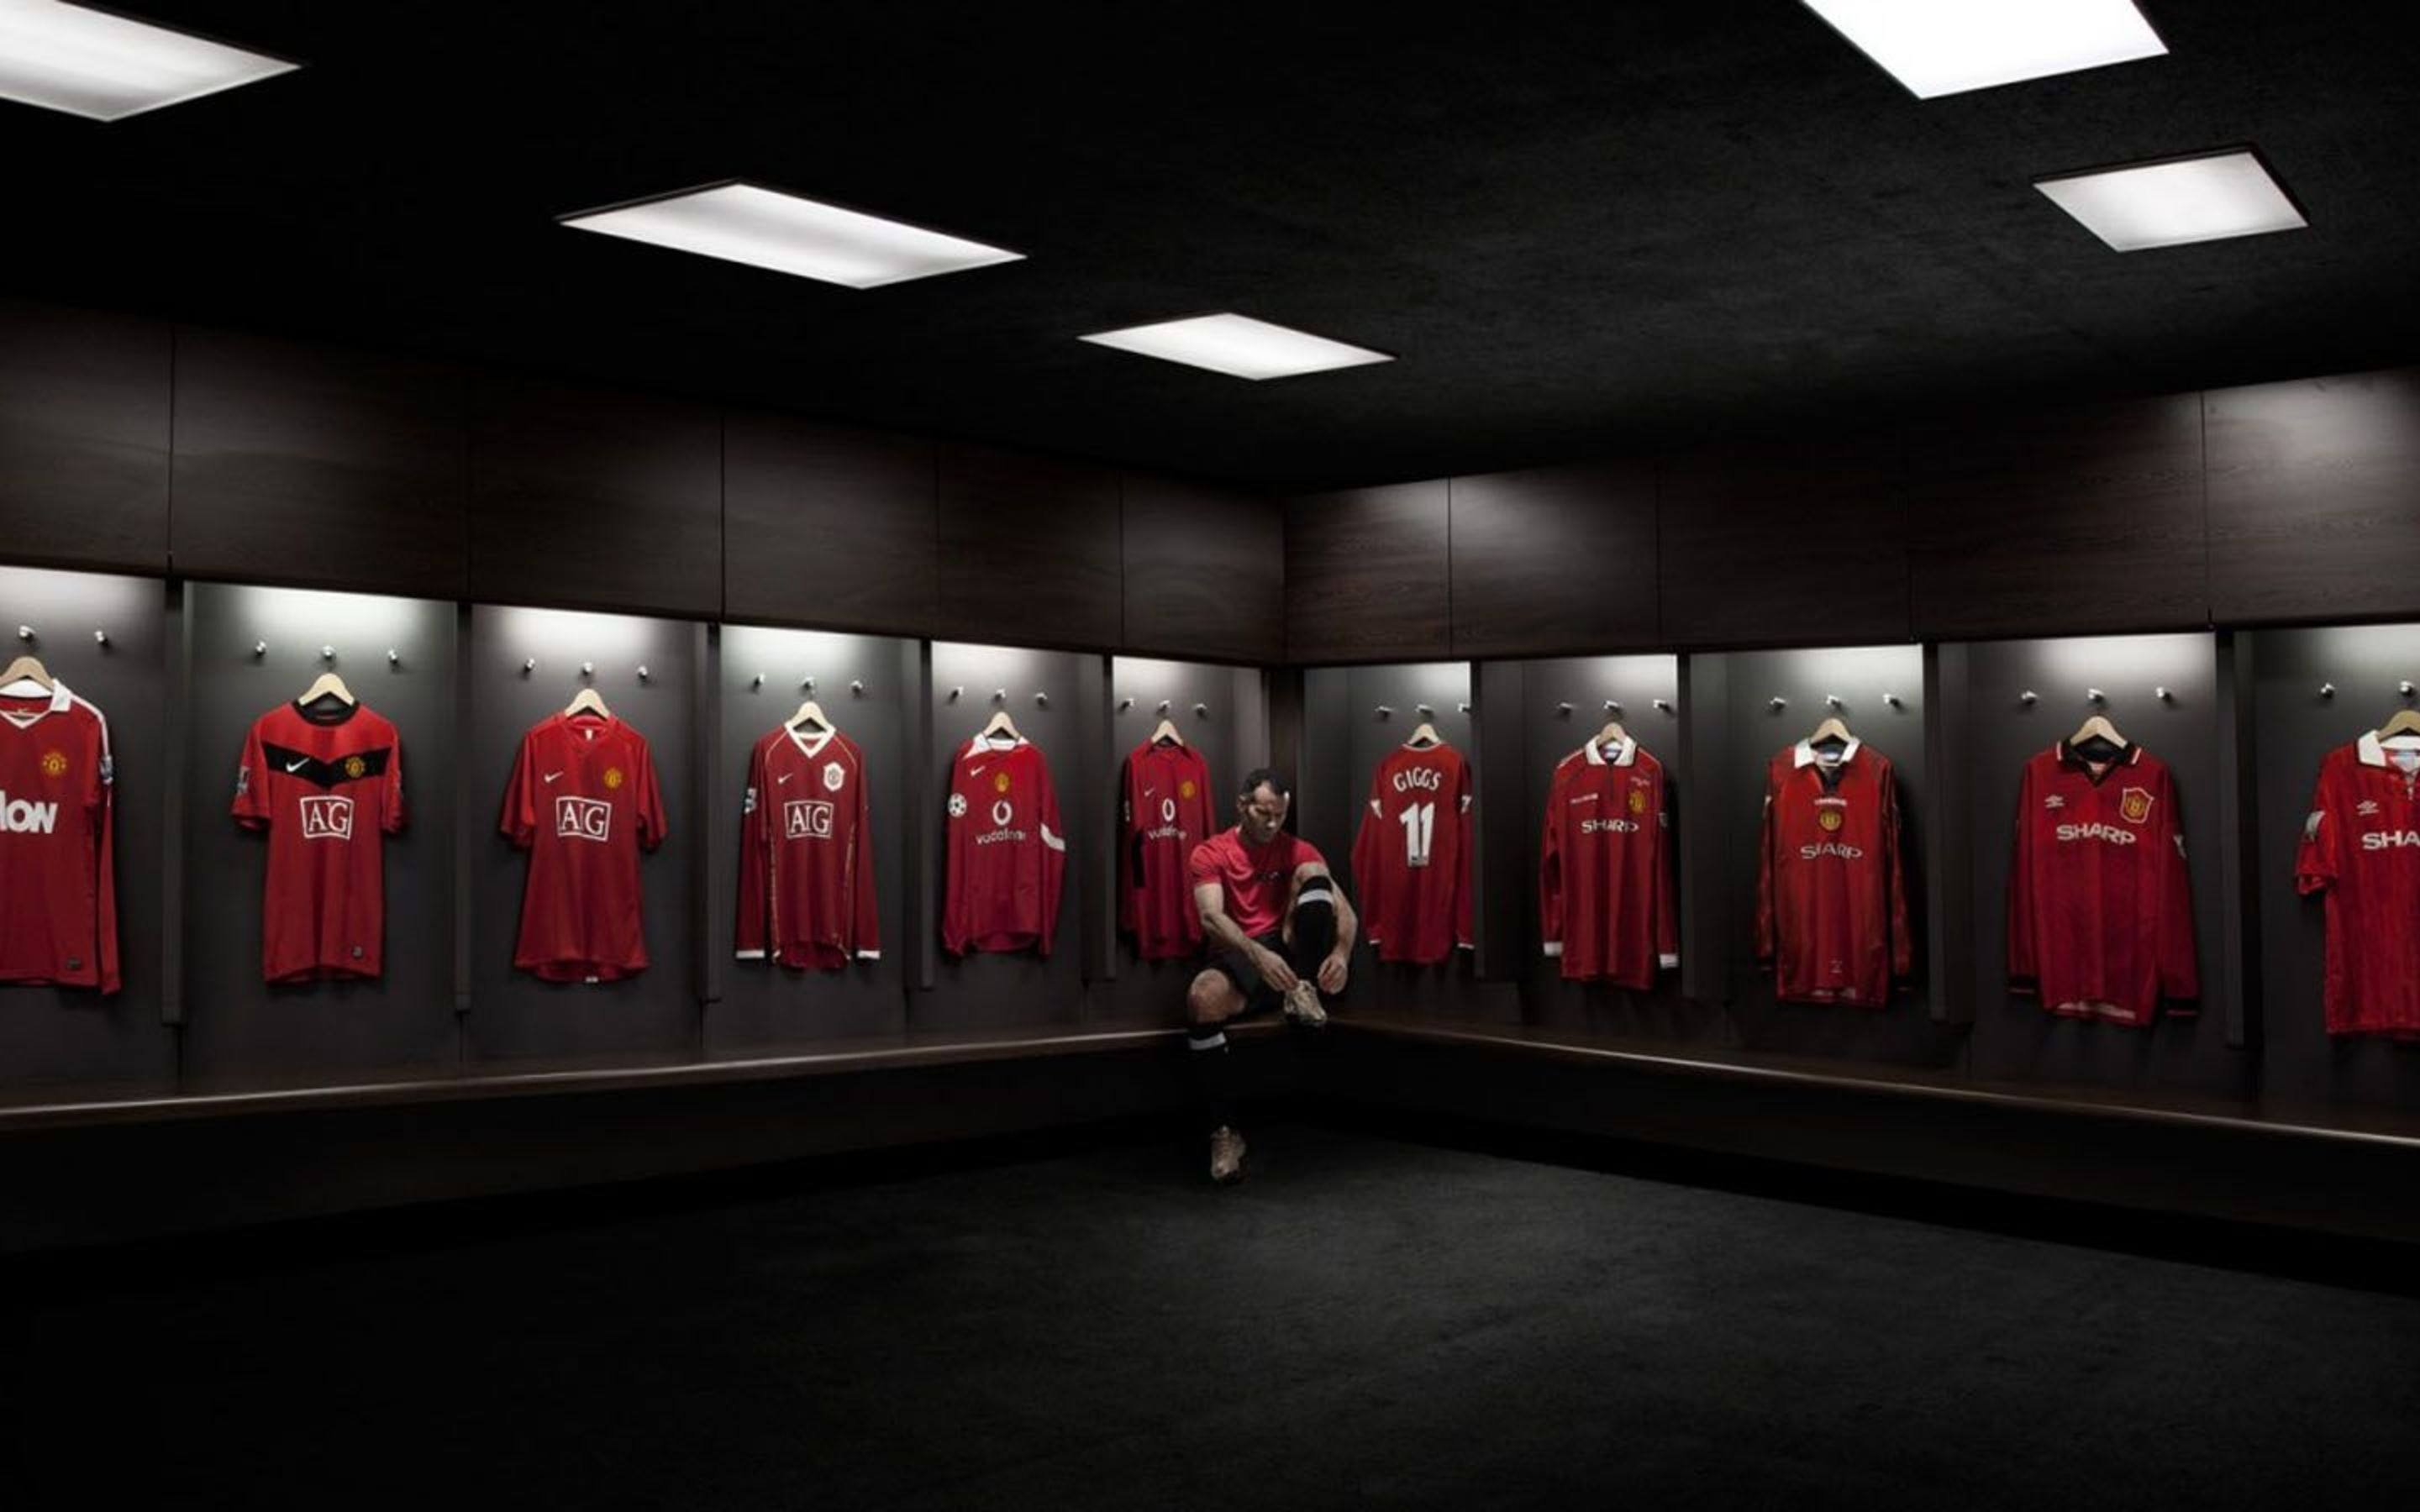 manchester united wallpapers top free manchester united backgrounds wallpaperaccess manchester united wallpapers top free